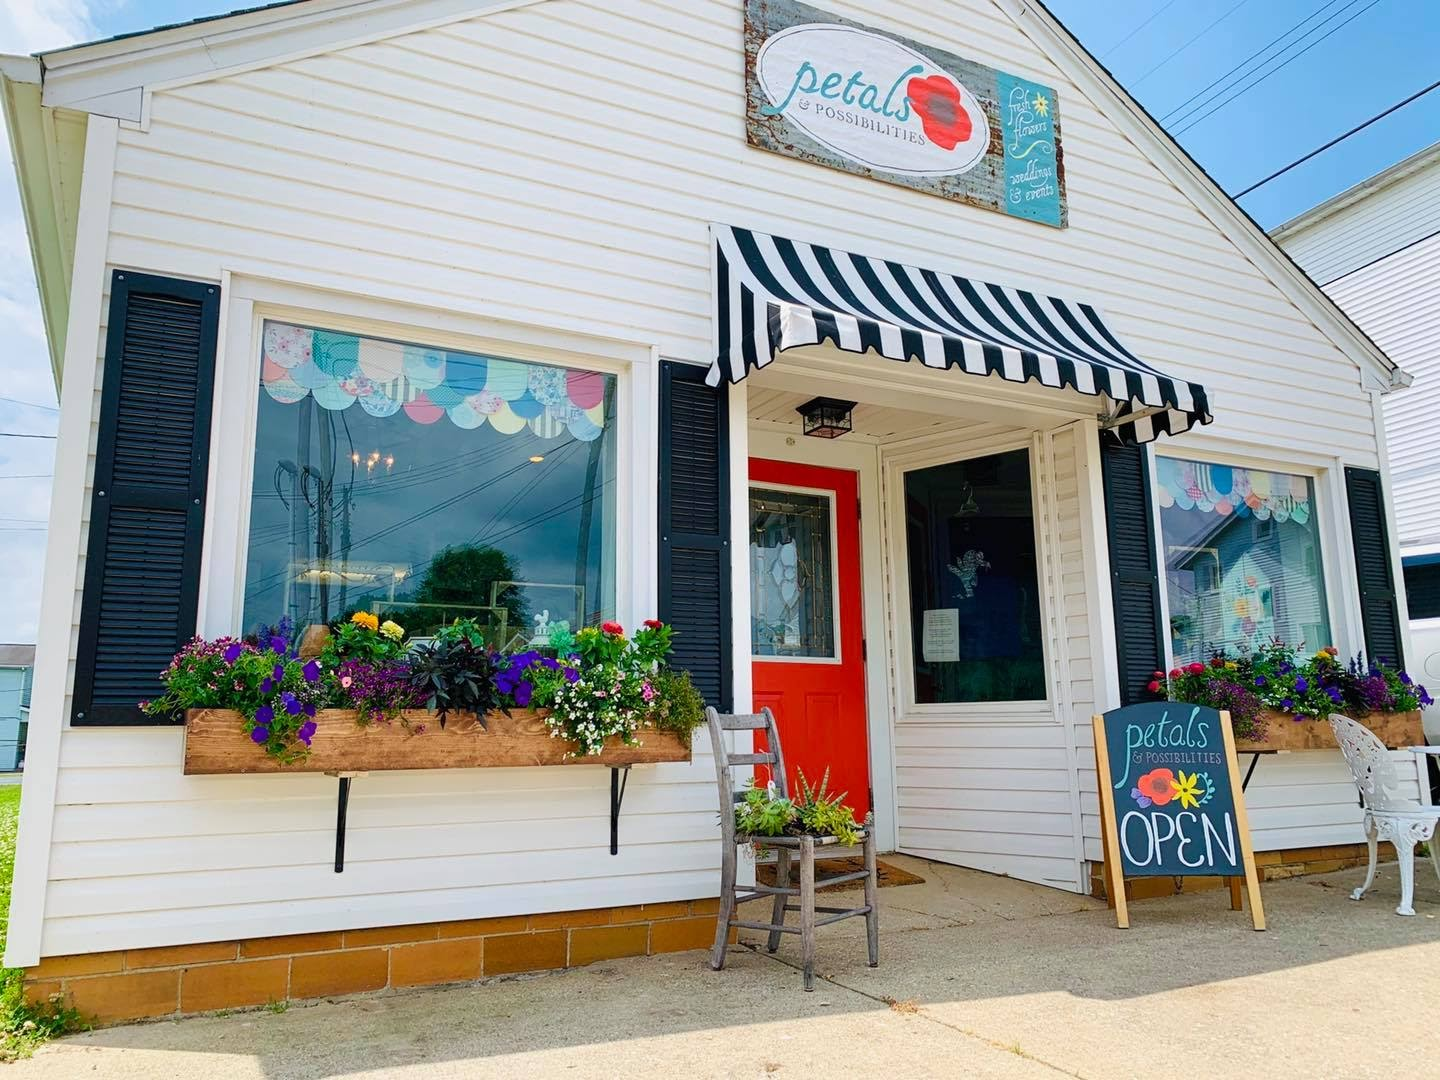 A picture of the Petal and Possibilities storefront. Building is white with flower boxes on windows.